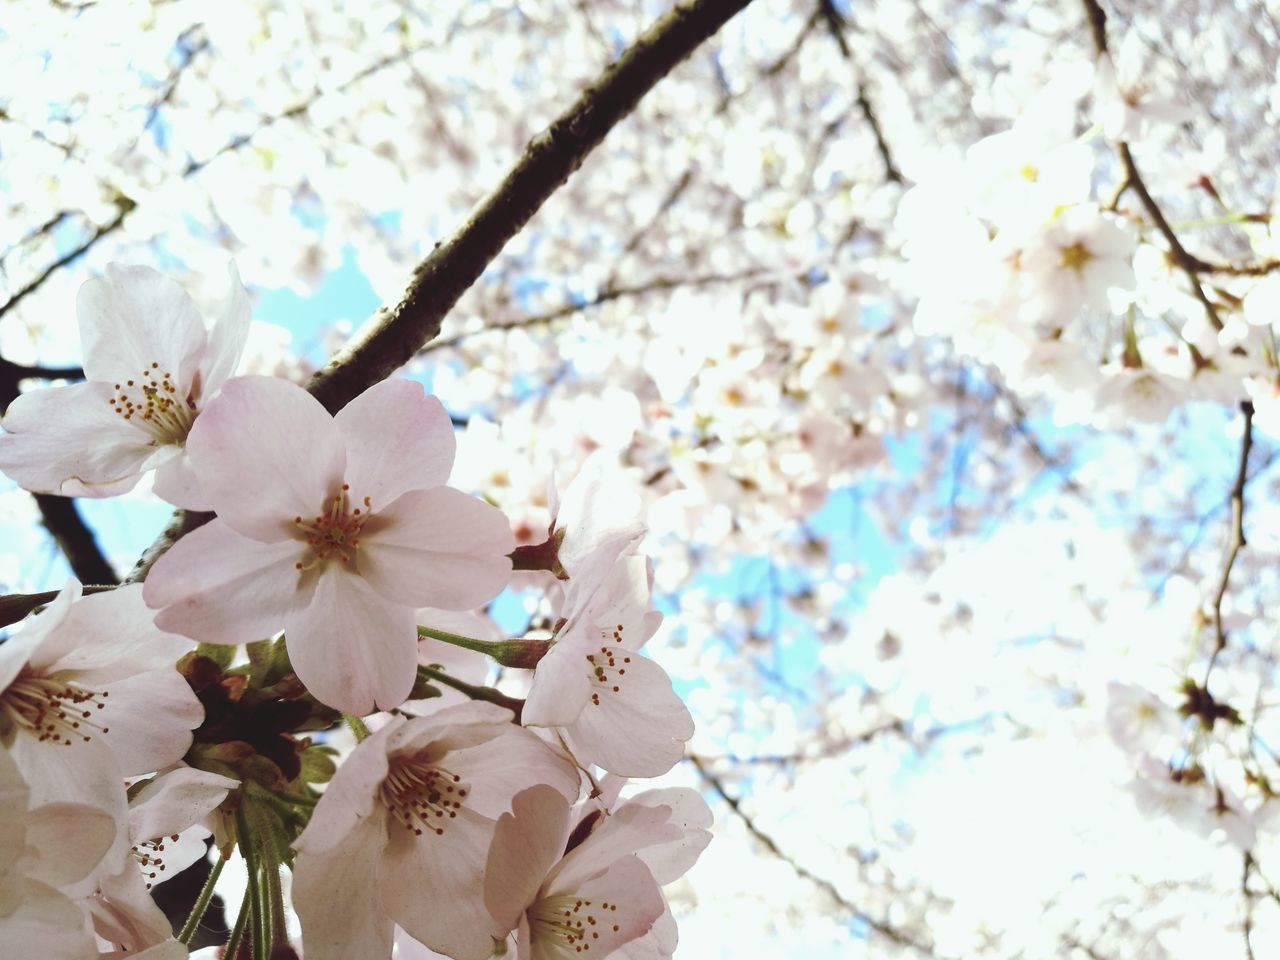 First Eyeem Photo Spring Kinuta Park Tree Flower Nature Growth Beauty In Nature Branch Springtime Blossom Close-up Fragility No People Petal Outdoors Flower Head Cherry Blossom Almond Tree Day Low Angle View Freshness First Eyeem Photo